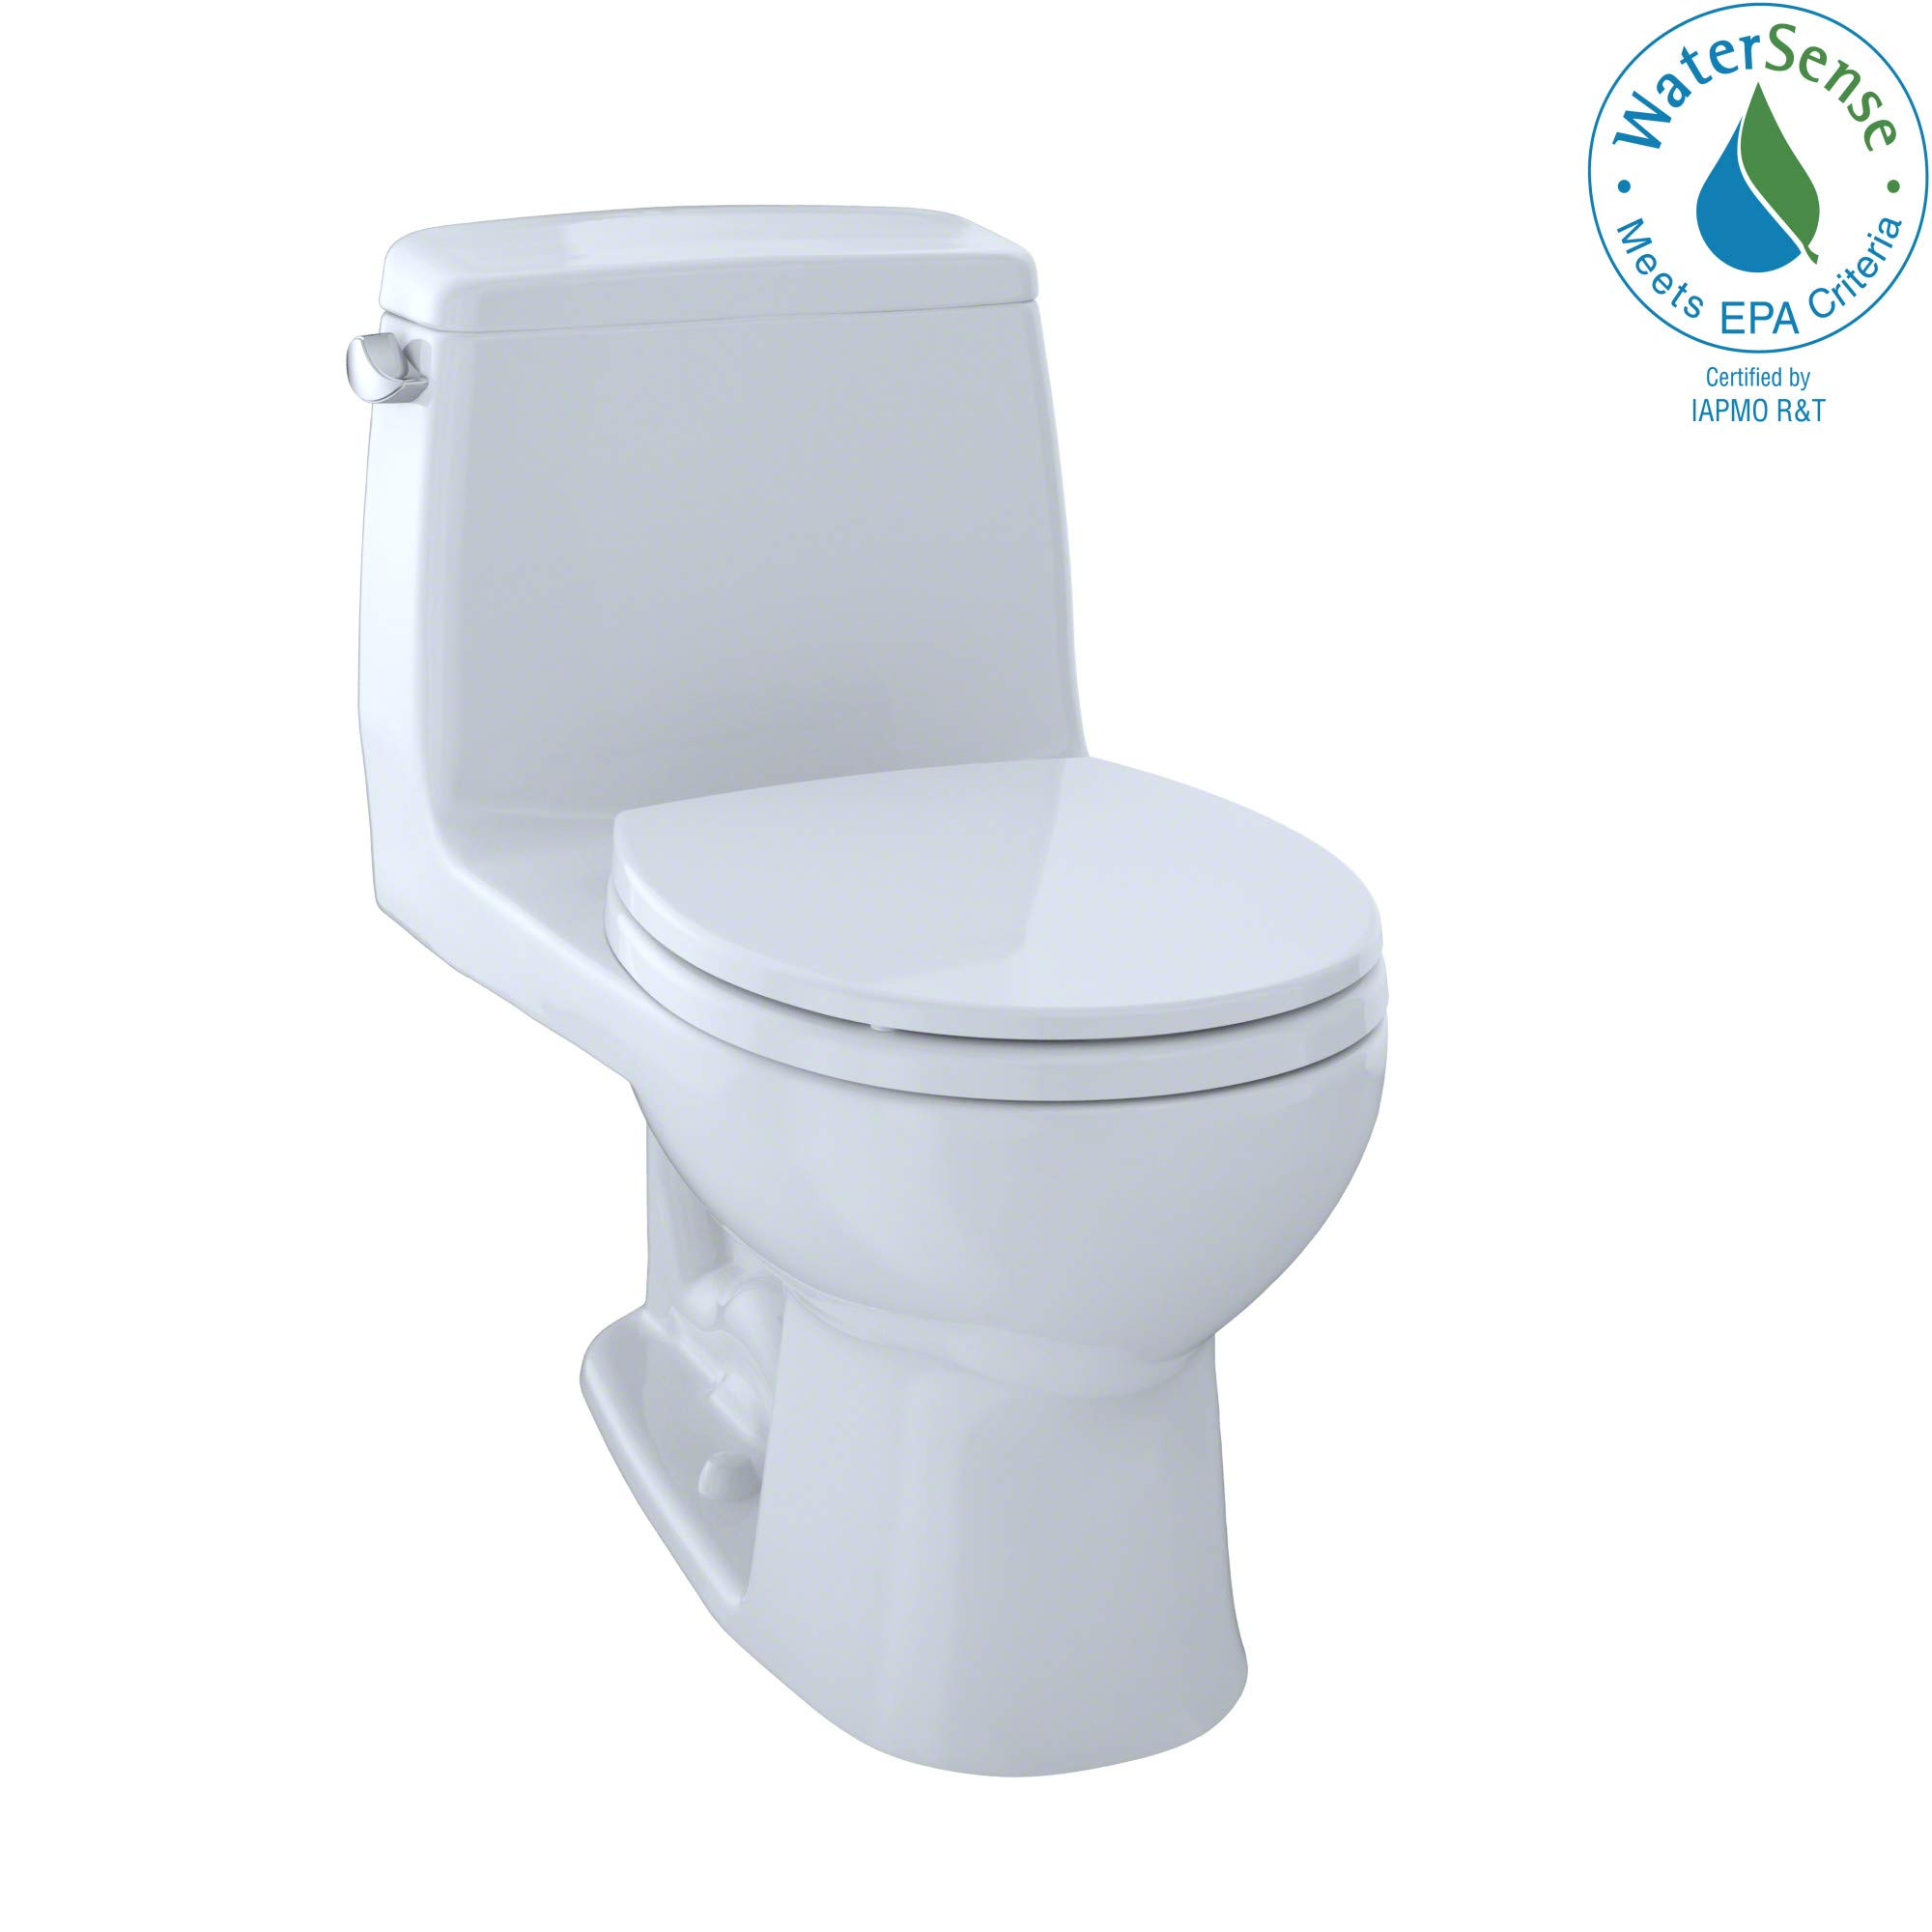 TOTO MS853113E#01 Eco Ultramax Round Front One Piece Toilet, Cotton White by TOTO